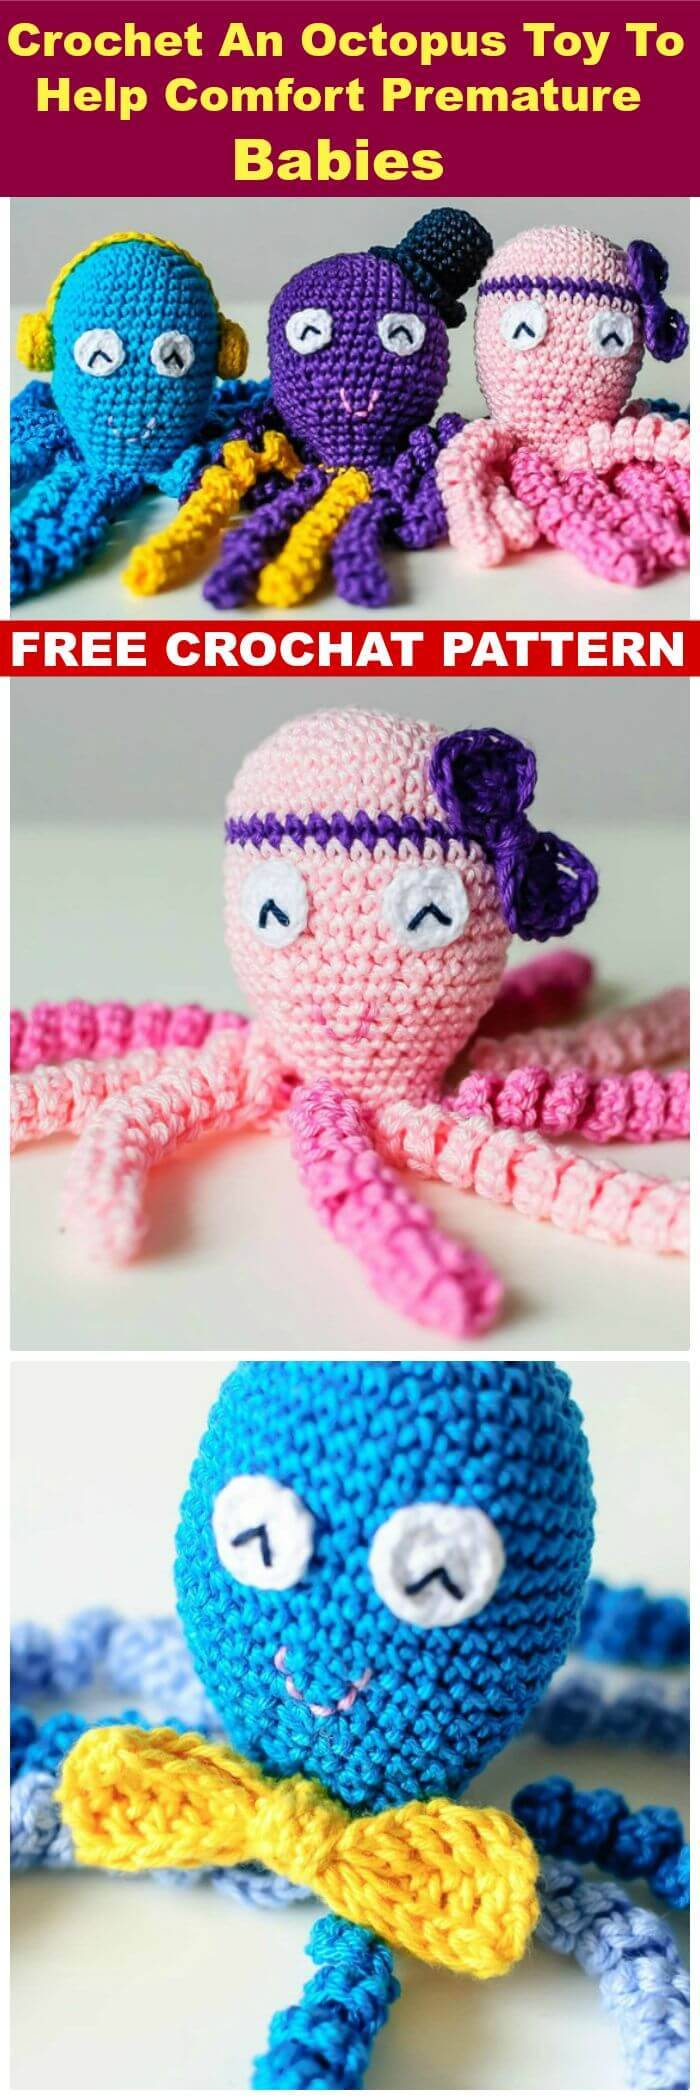 DIY Crochet An Octopus Toy To Help Comfort Premature Babies, free crochet jellyfish patterns